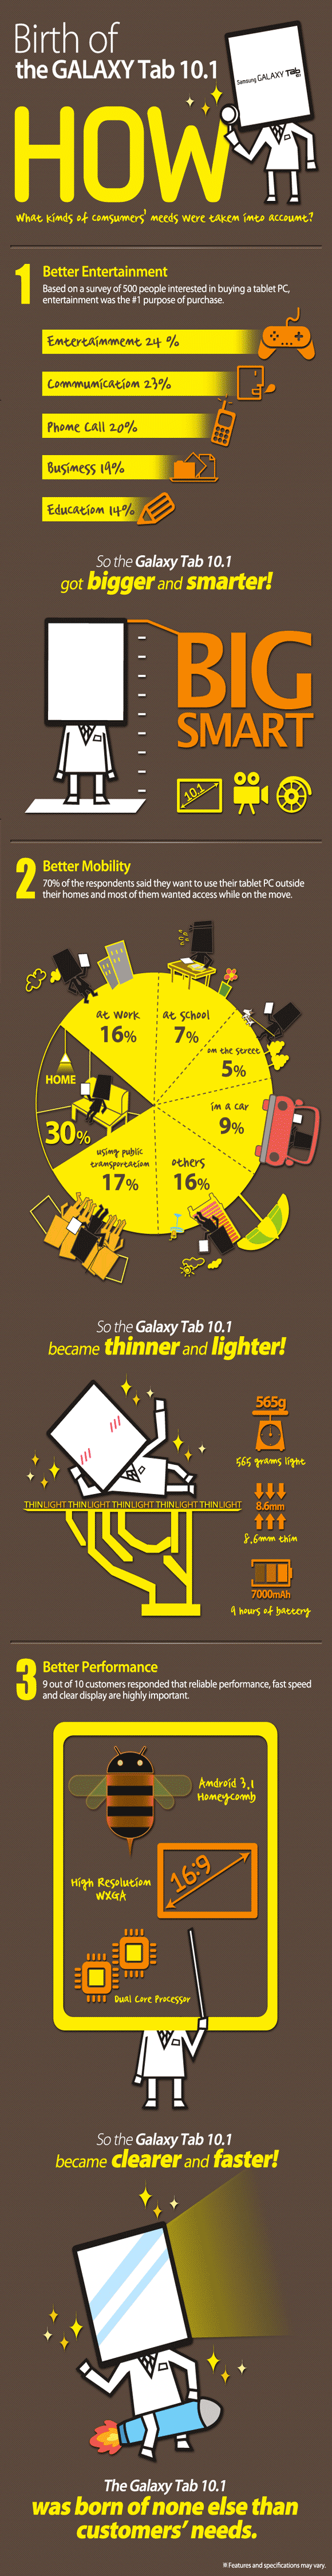 GALAXY Tab 10 Infographic The Birth of Samsung Galaxy Tab 10.1 [Infographic]